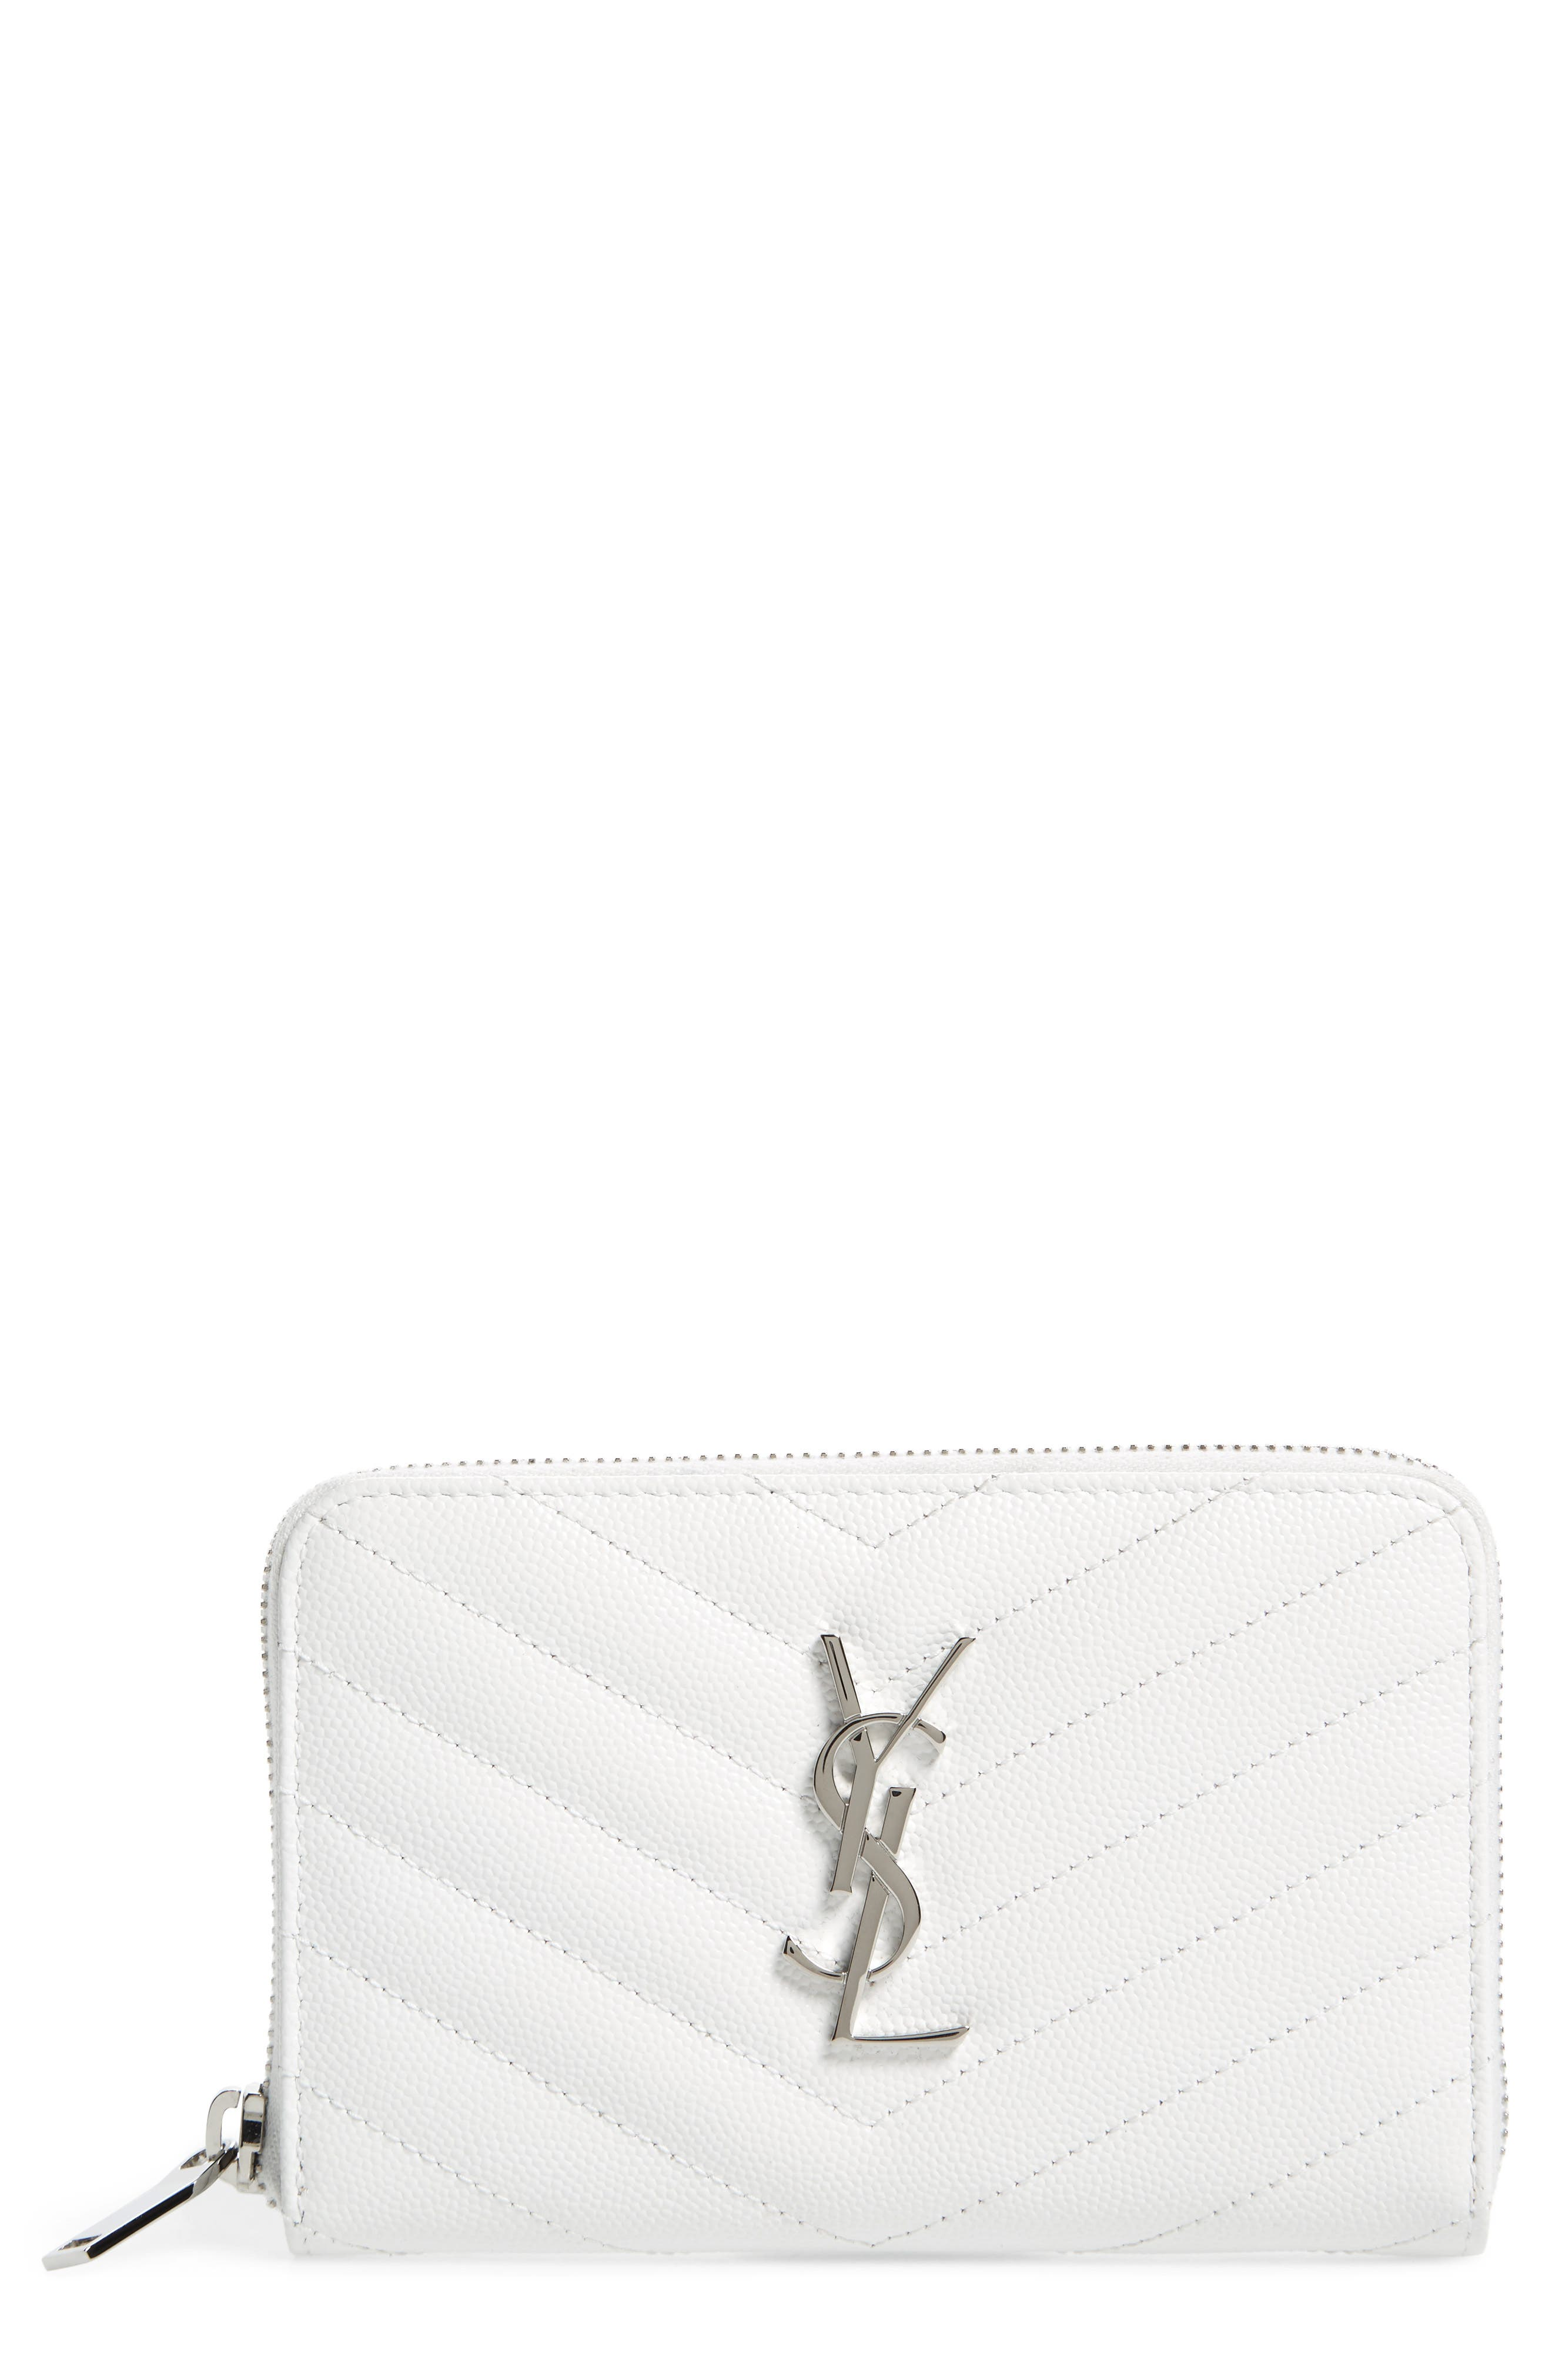 Small Grained Leather Zip Around Wallet,                         Main,                         color, Optic White